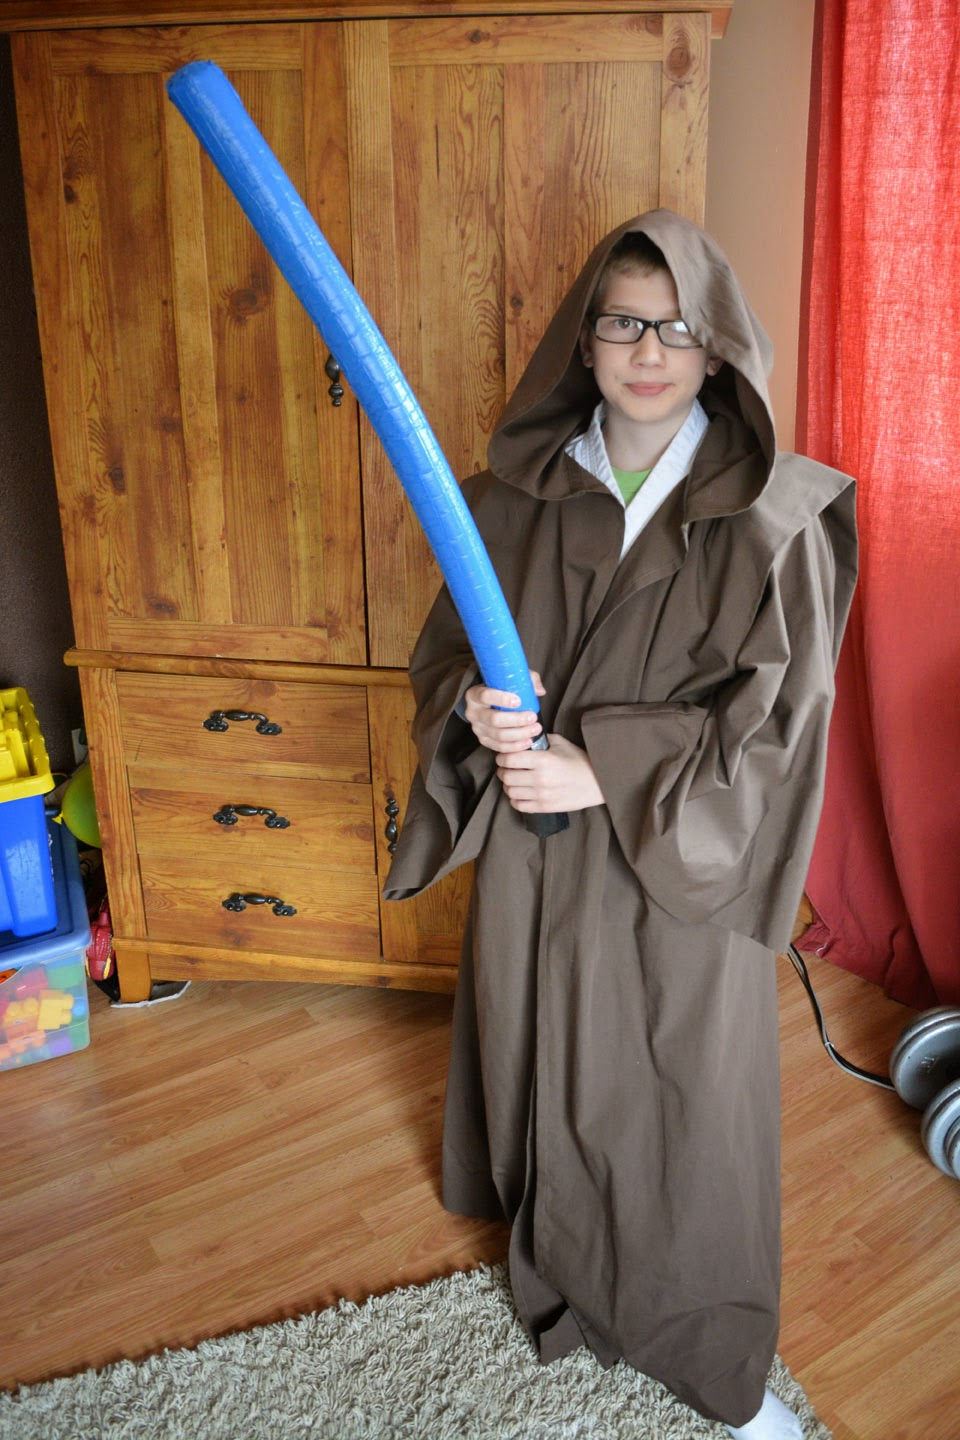 Star Wars Jedi robe